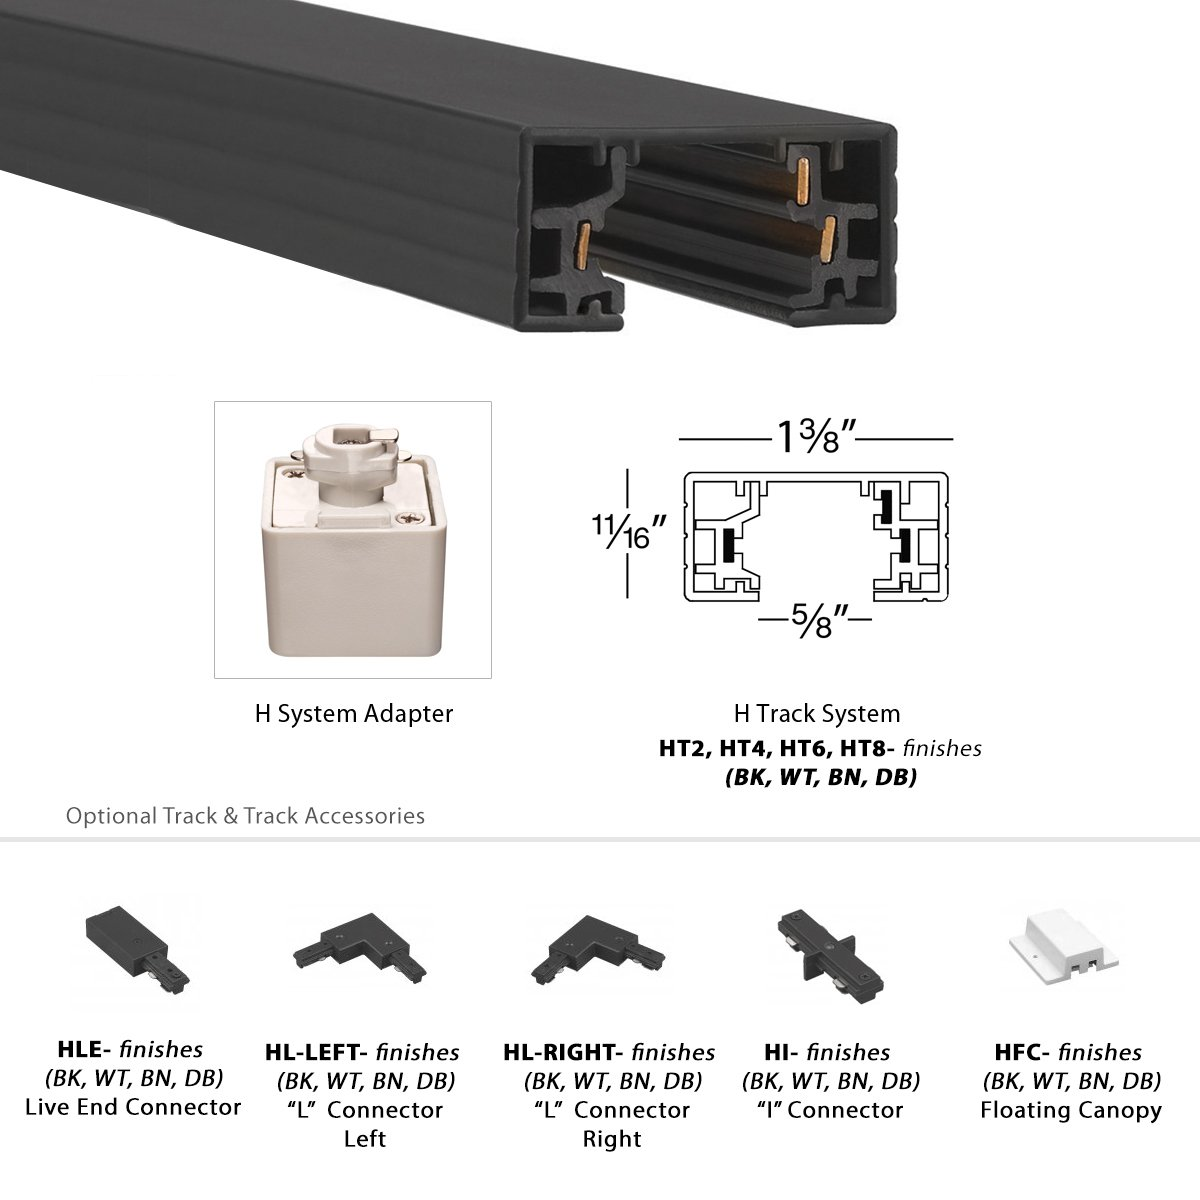 Wac lighting hr hl 4 low voltage new construction housing recessed can light - Wac Lighting H Led207 30 Wt Contemporary Summit Acled 15w Beamshift Line Voltage Cube H Track Head Amazon Com